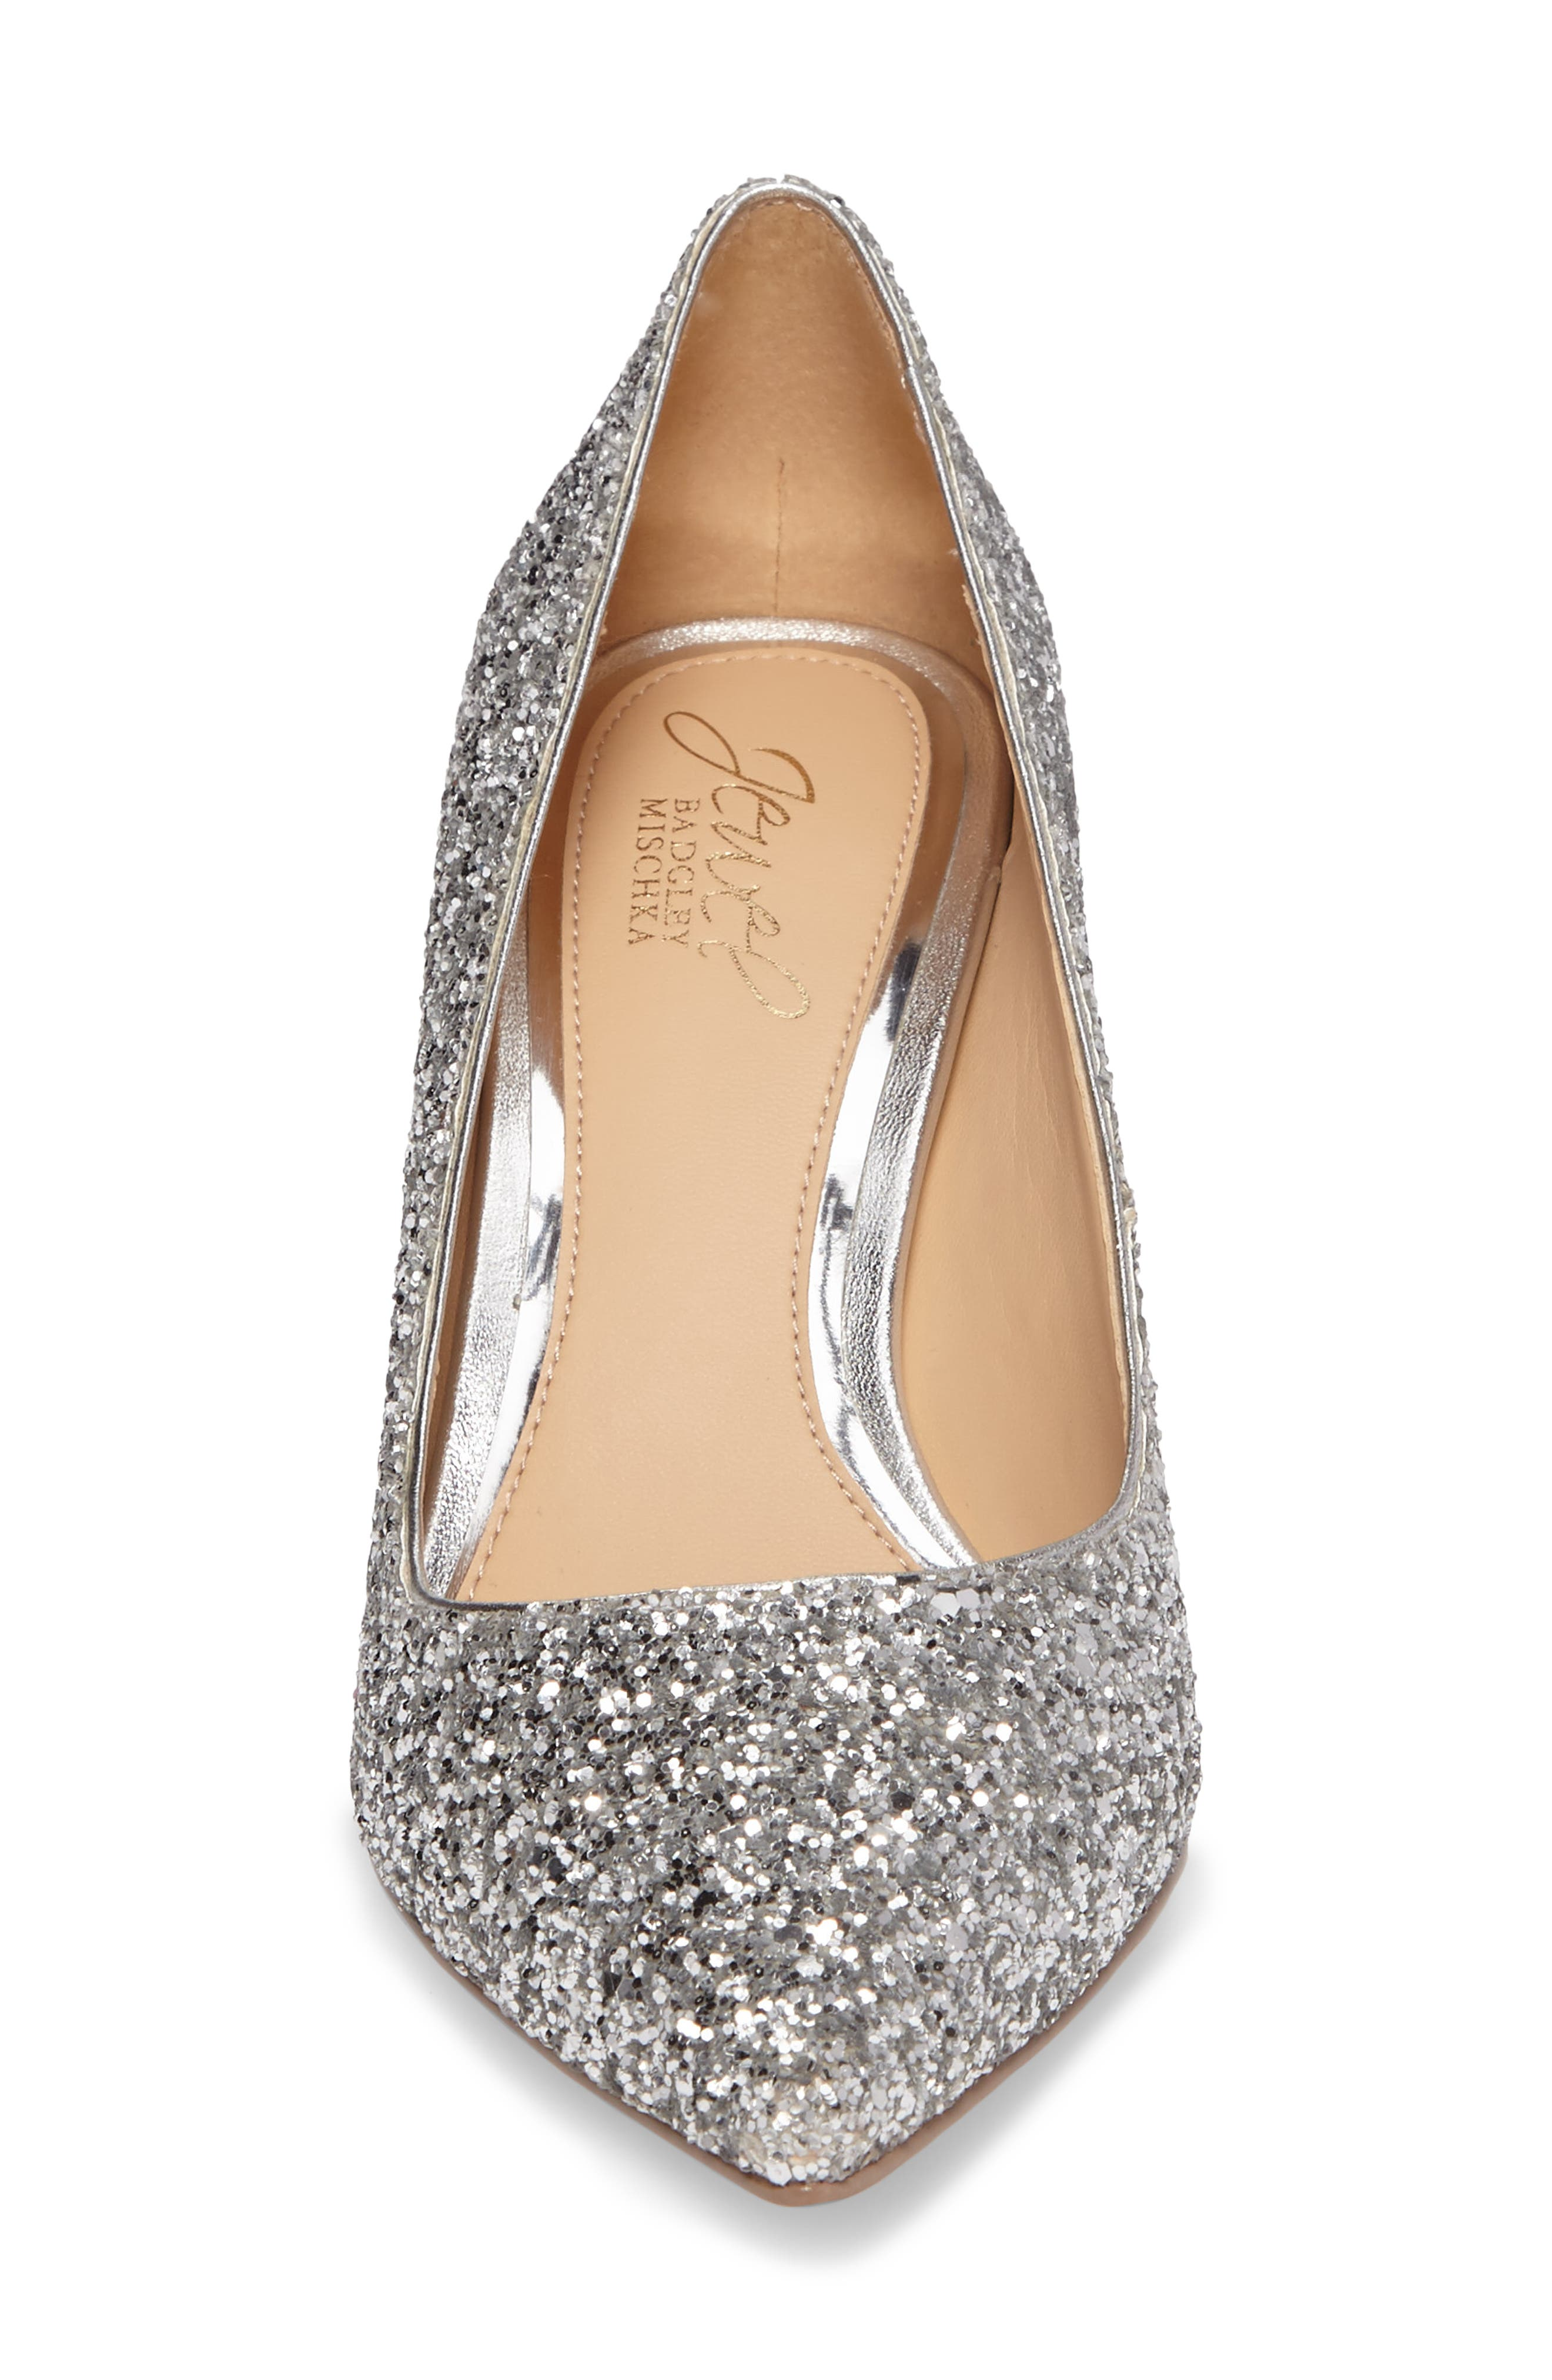 Lyla Glitter Pointy Toe Pump,                             Alternate thumbnail 4, color,                             Silver